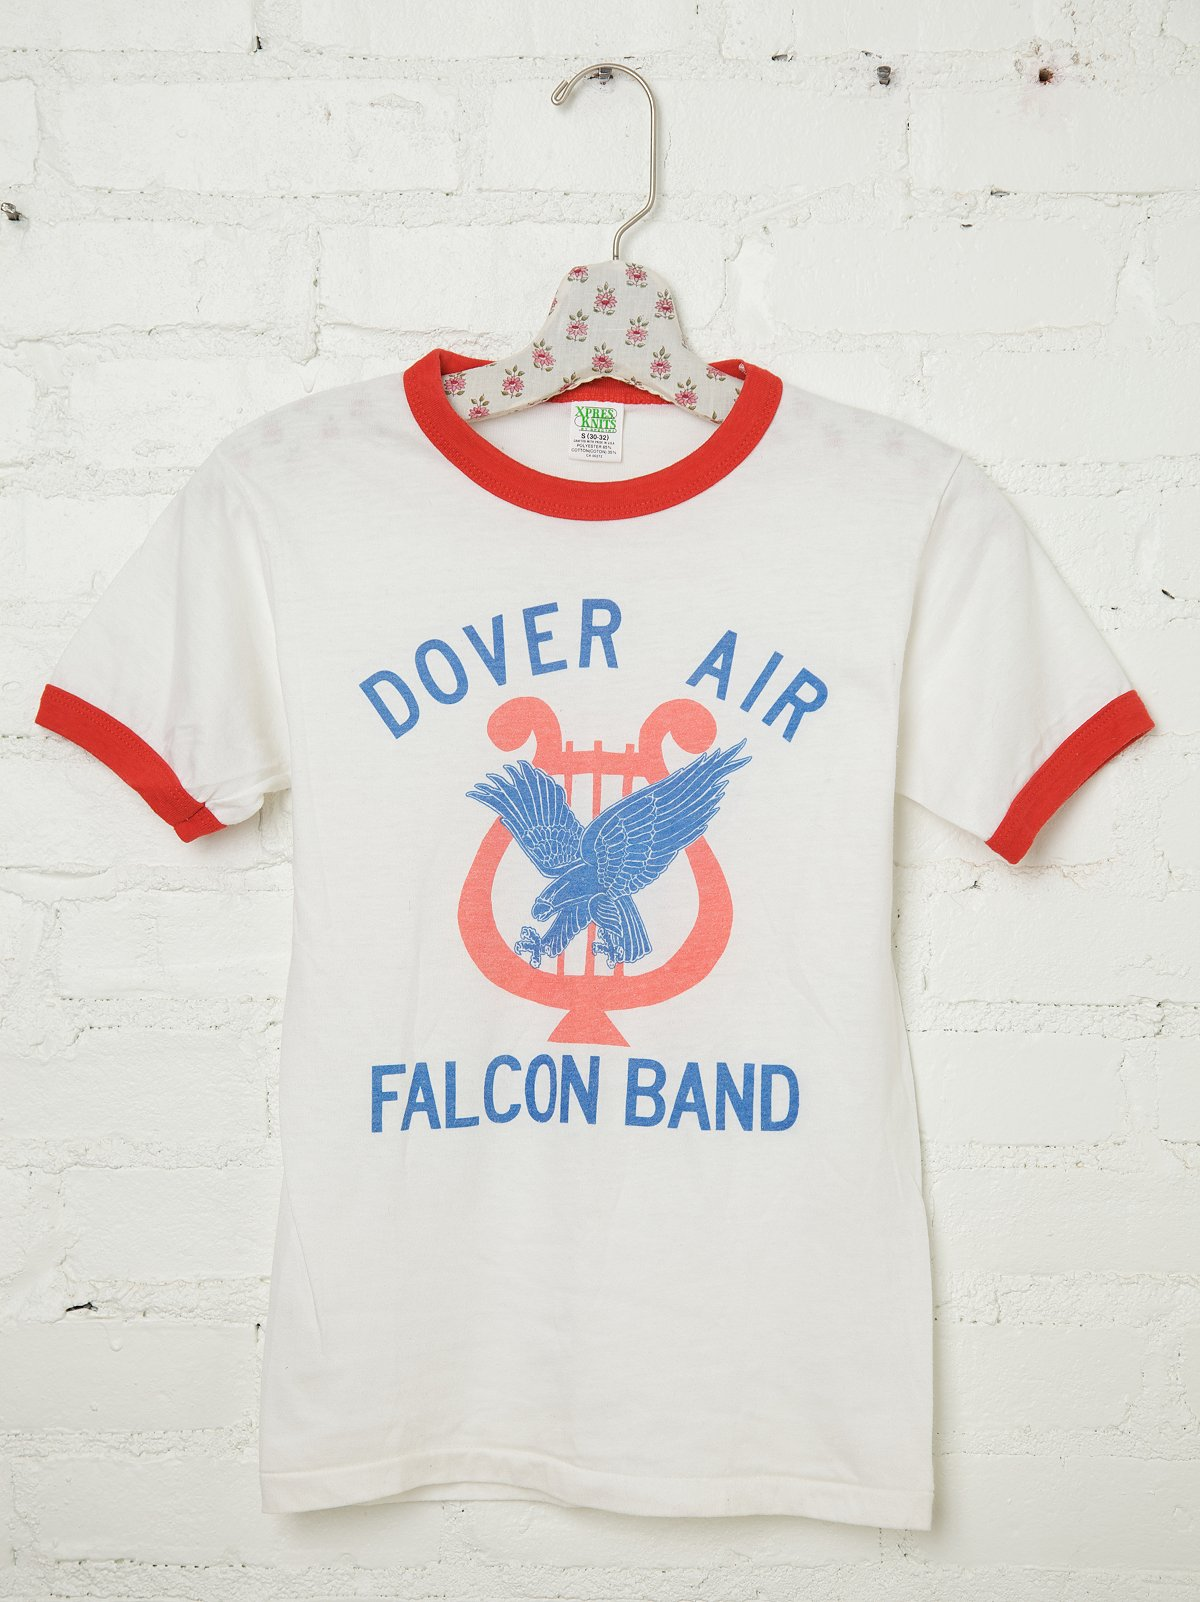 Vintage Dover Air Ringer Tee